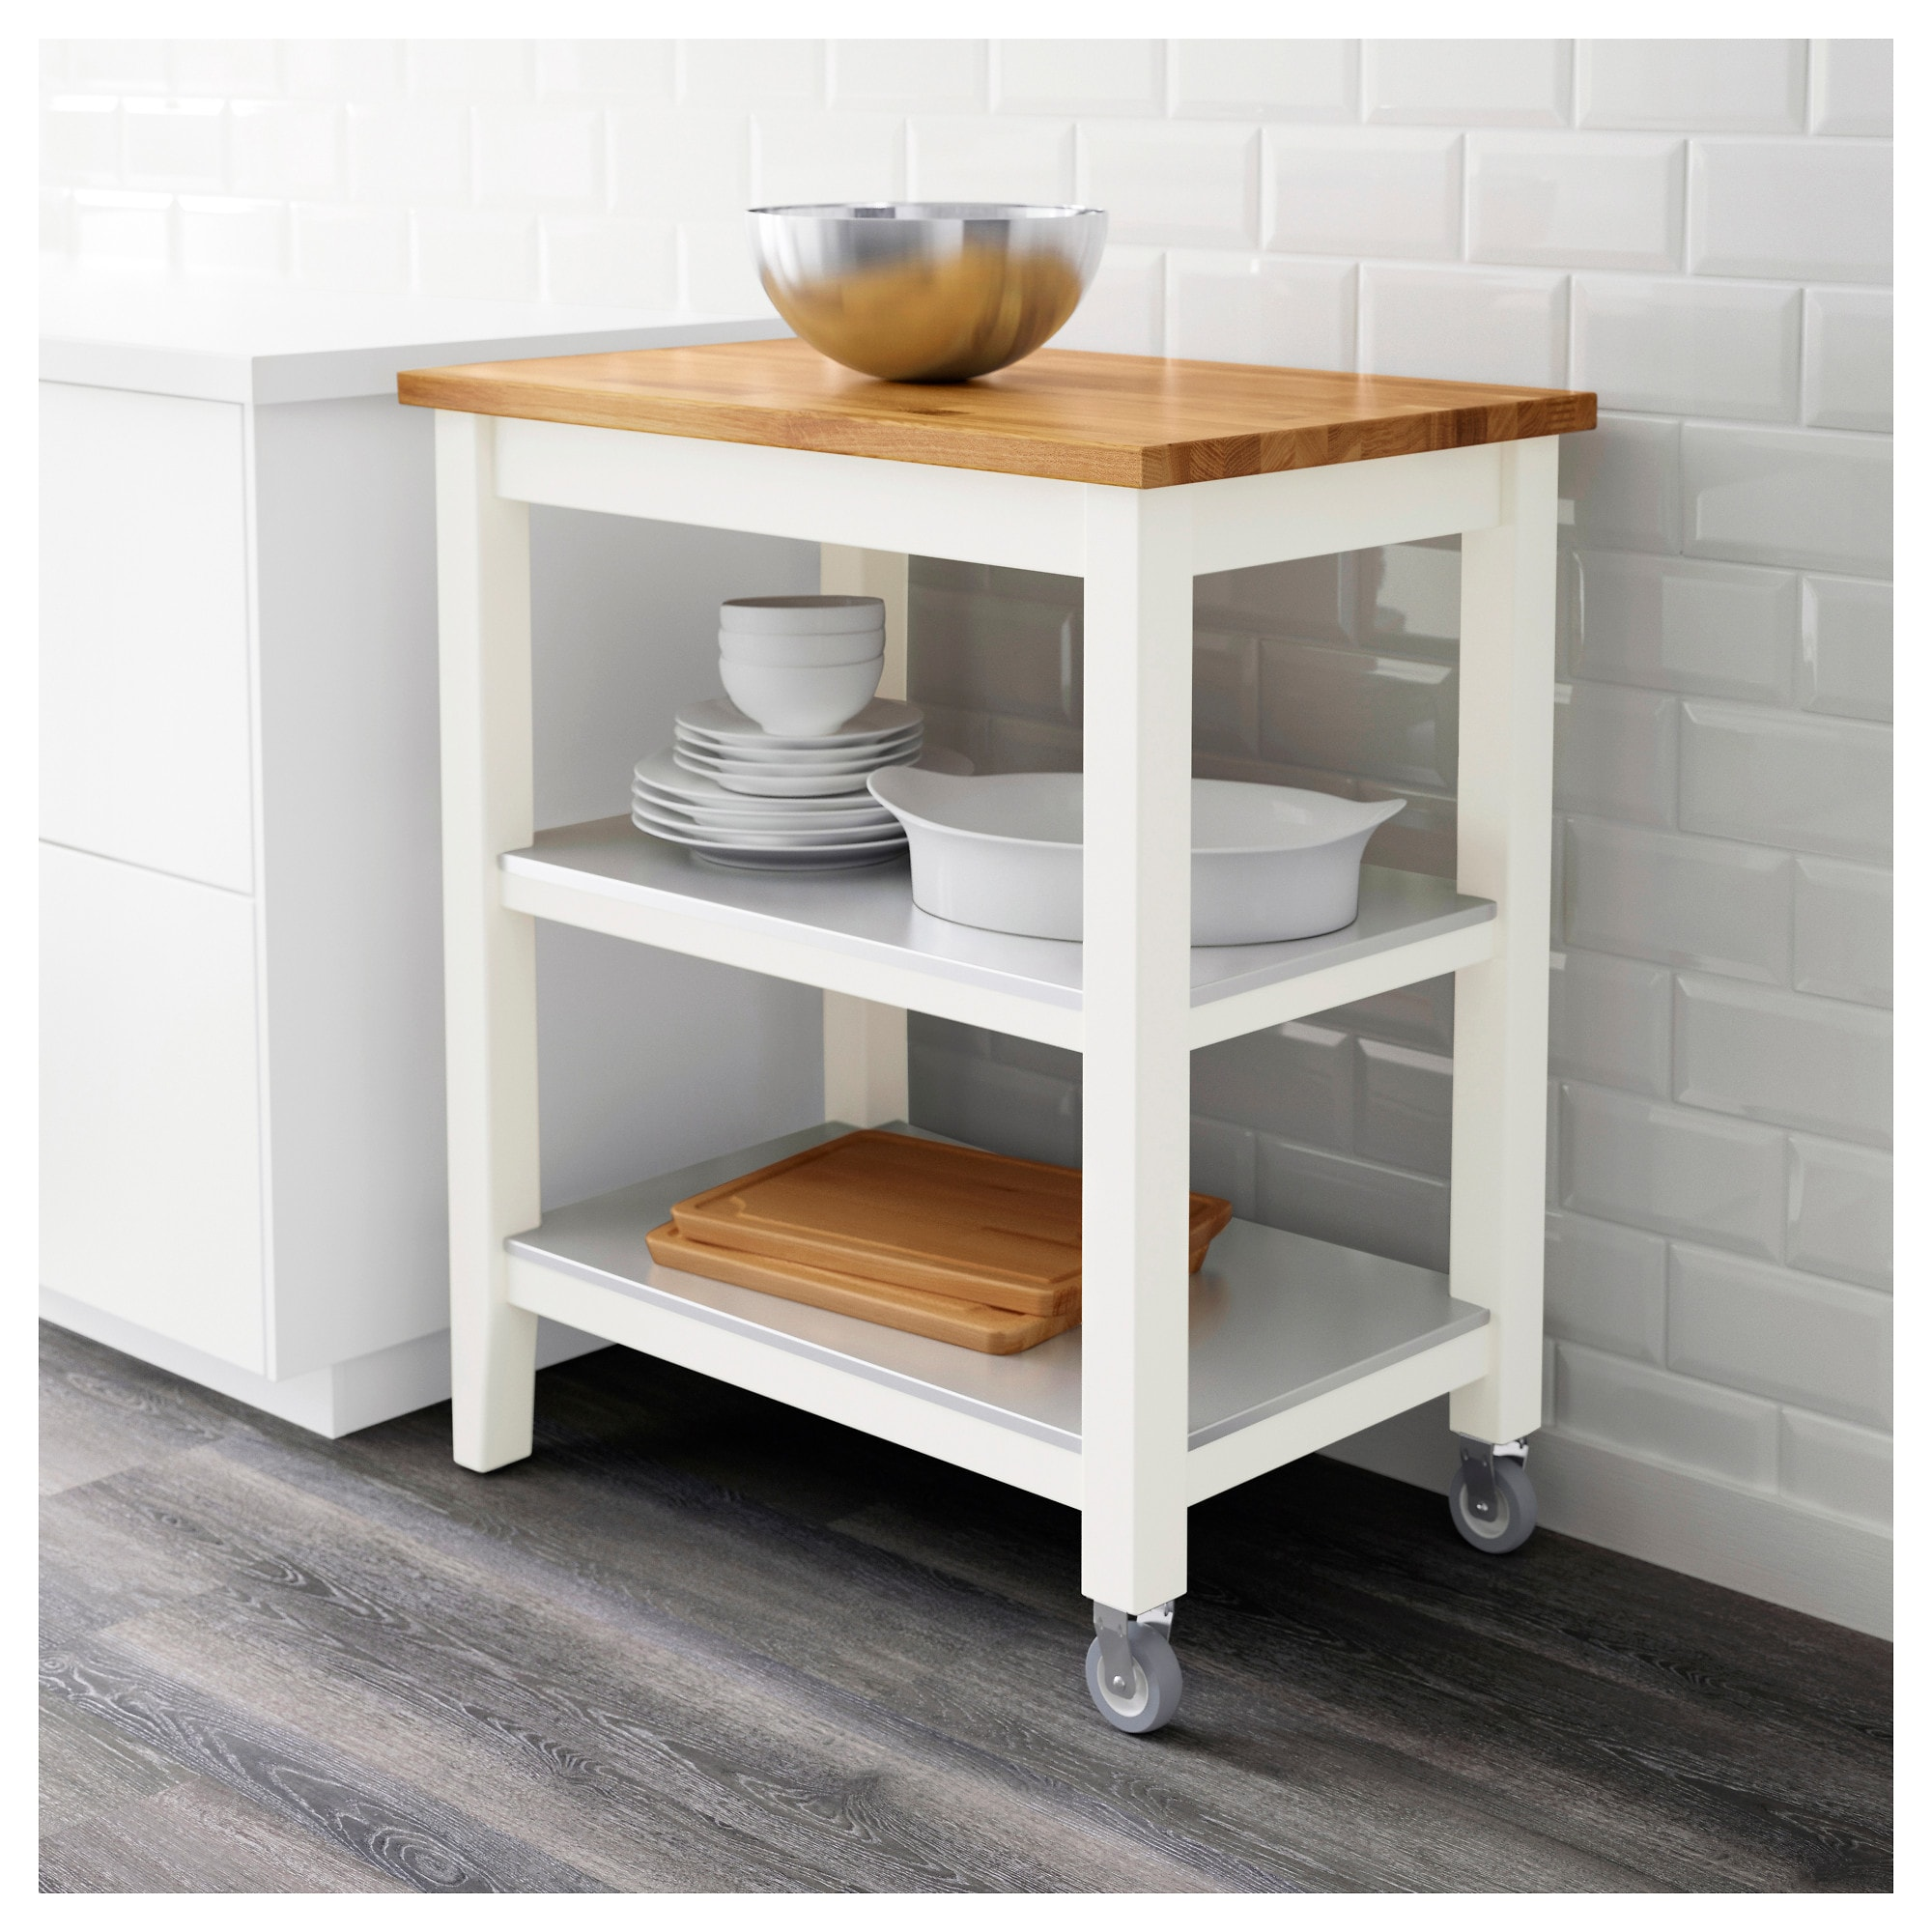 IKEA Kitchen Carts Featuring the STENSTORP Kitchen Cart